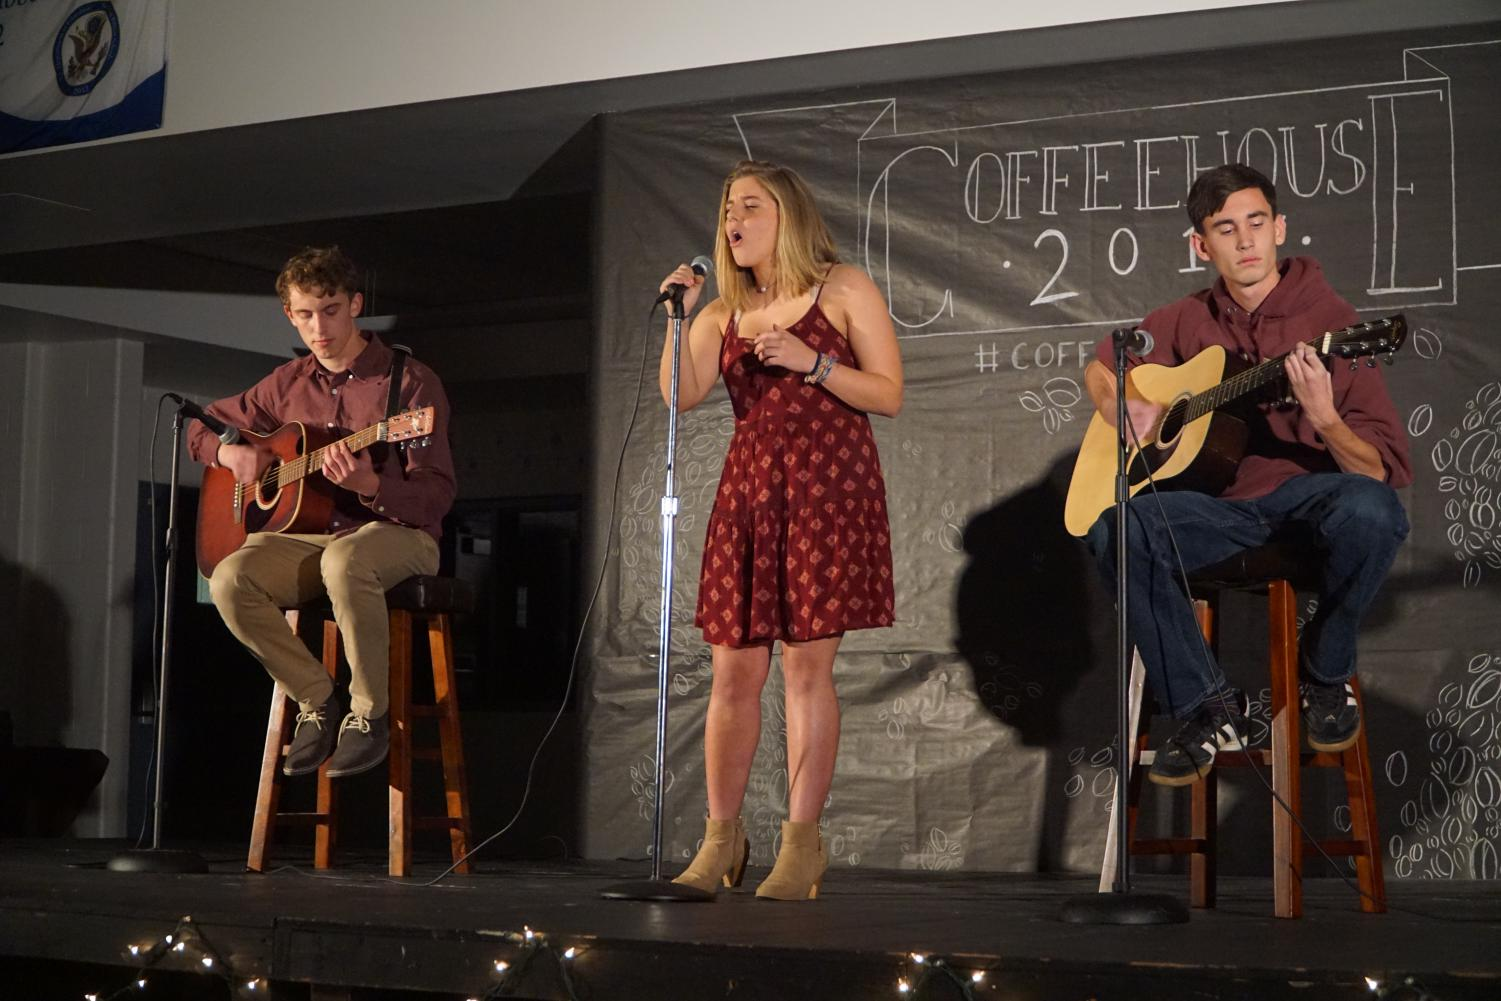 Seniors Matthew Avena of Middletown, Abigail Karl of Monmouth Beach and Kyle Robinson of Middletown performed the last number of Coffeehouse.